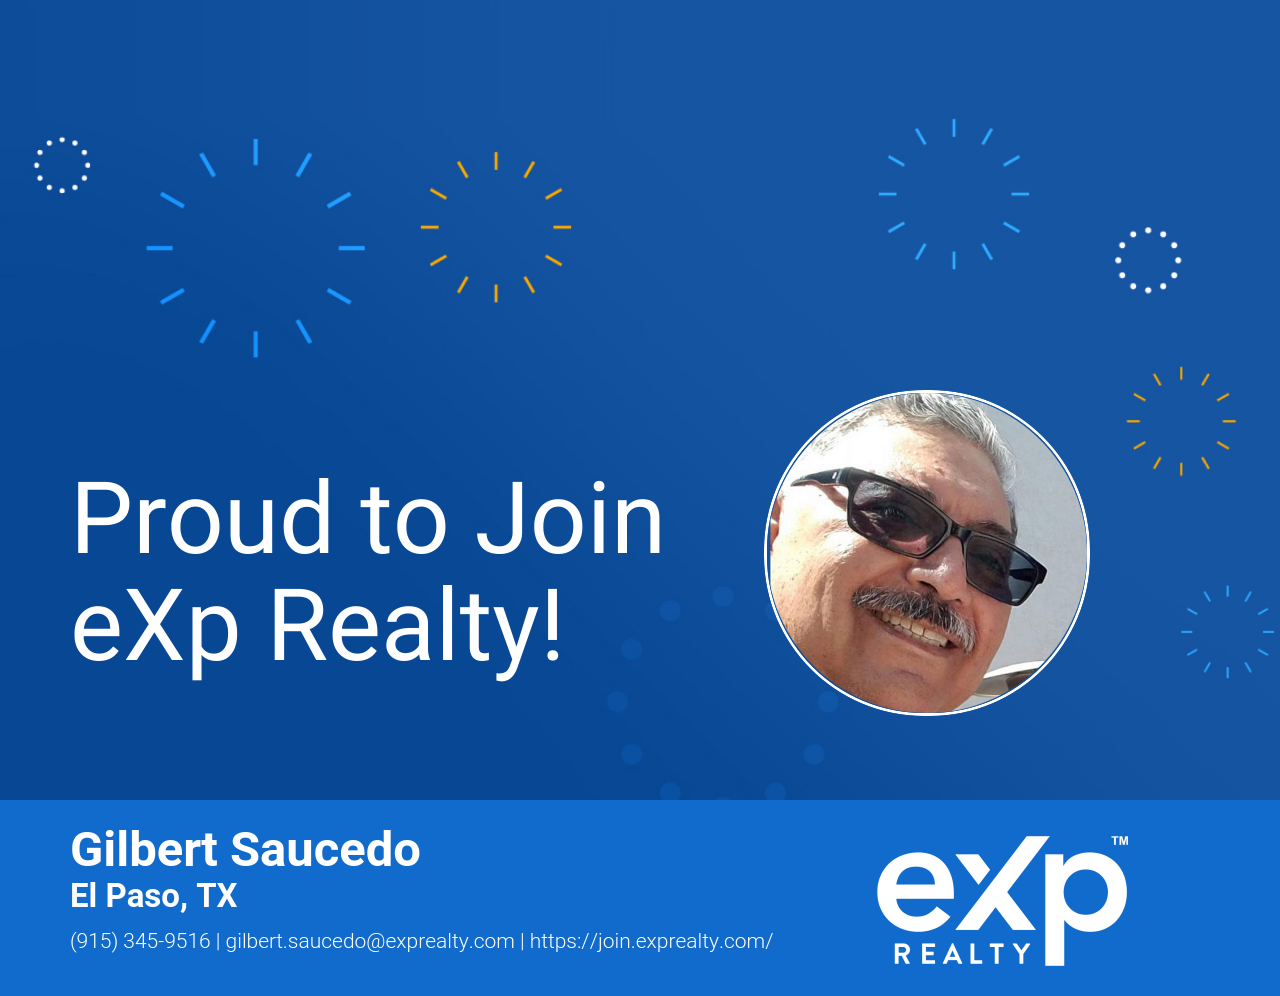 eXp Realty Welcomes Gilbert Saucedo!